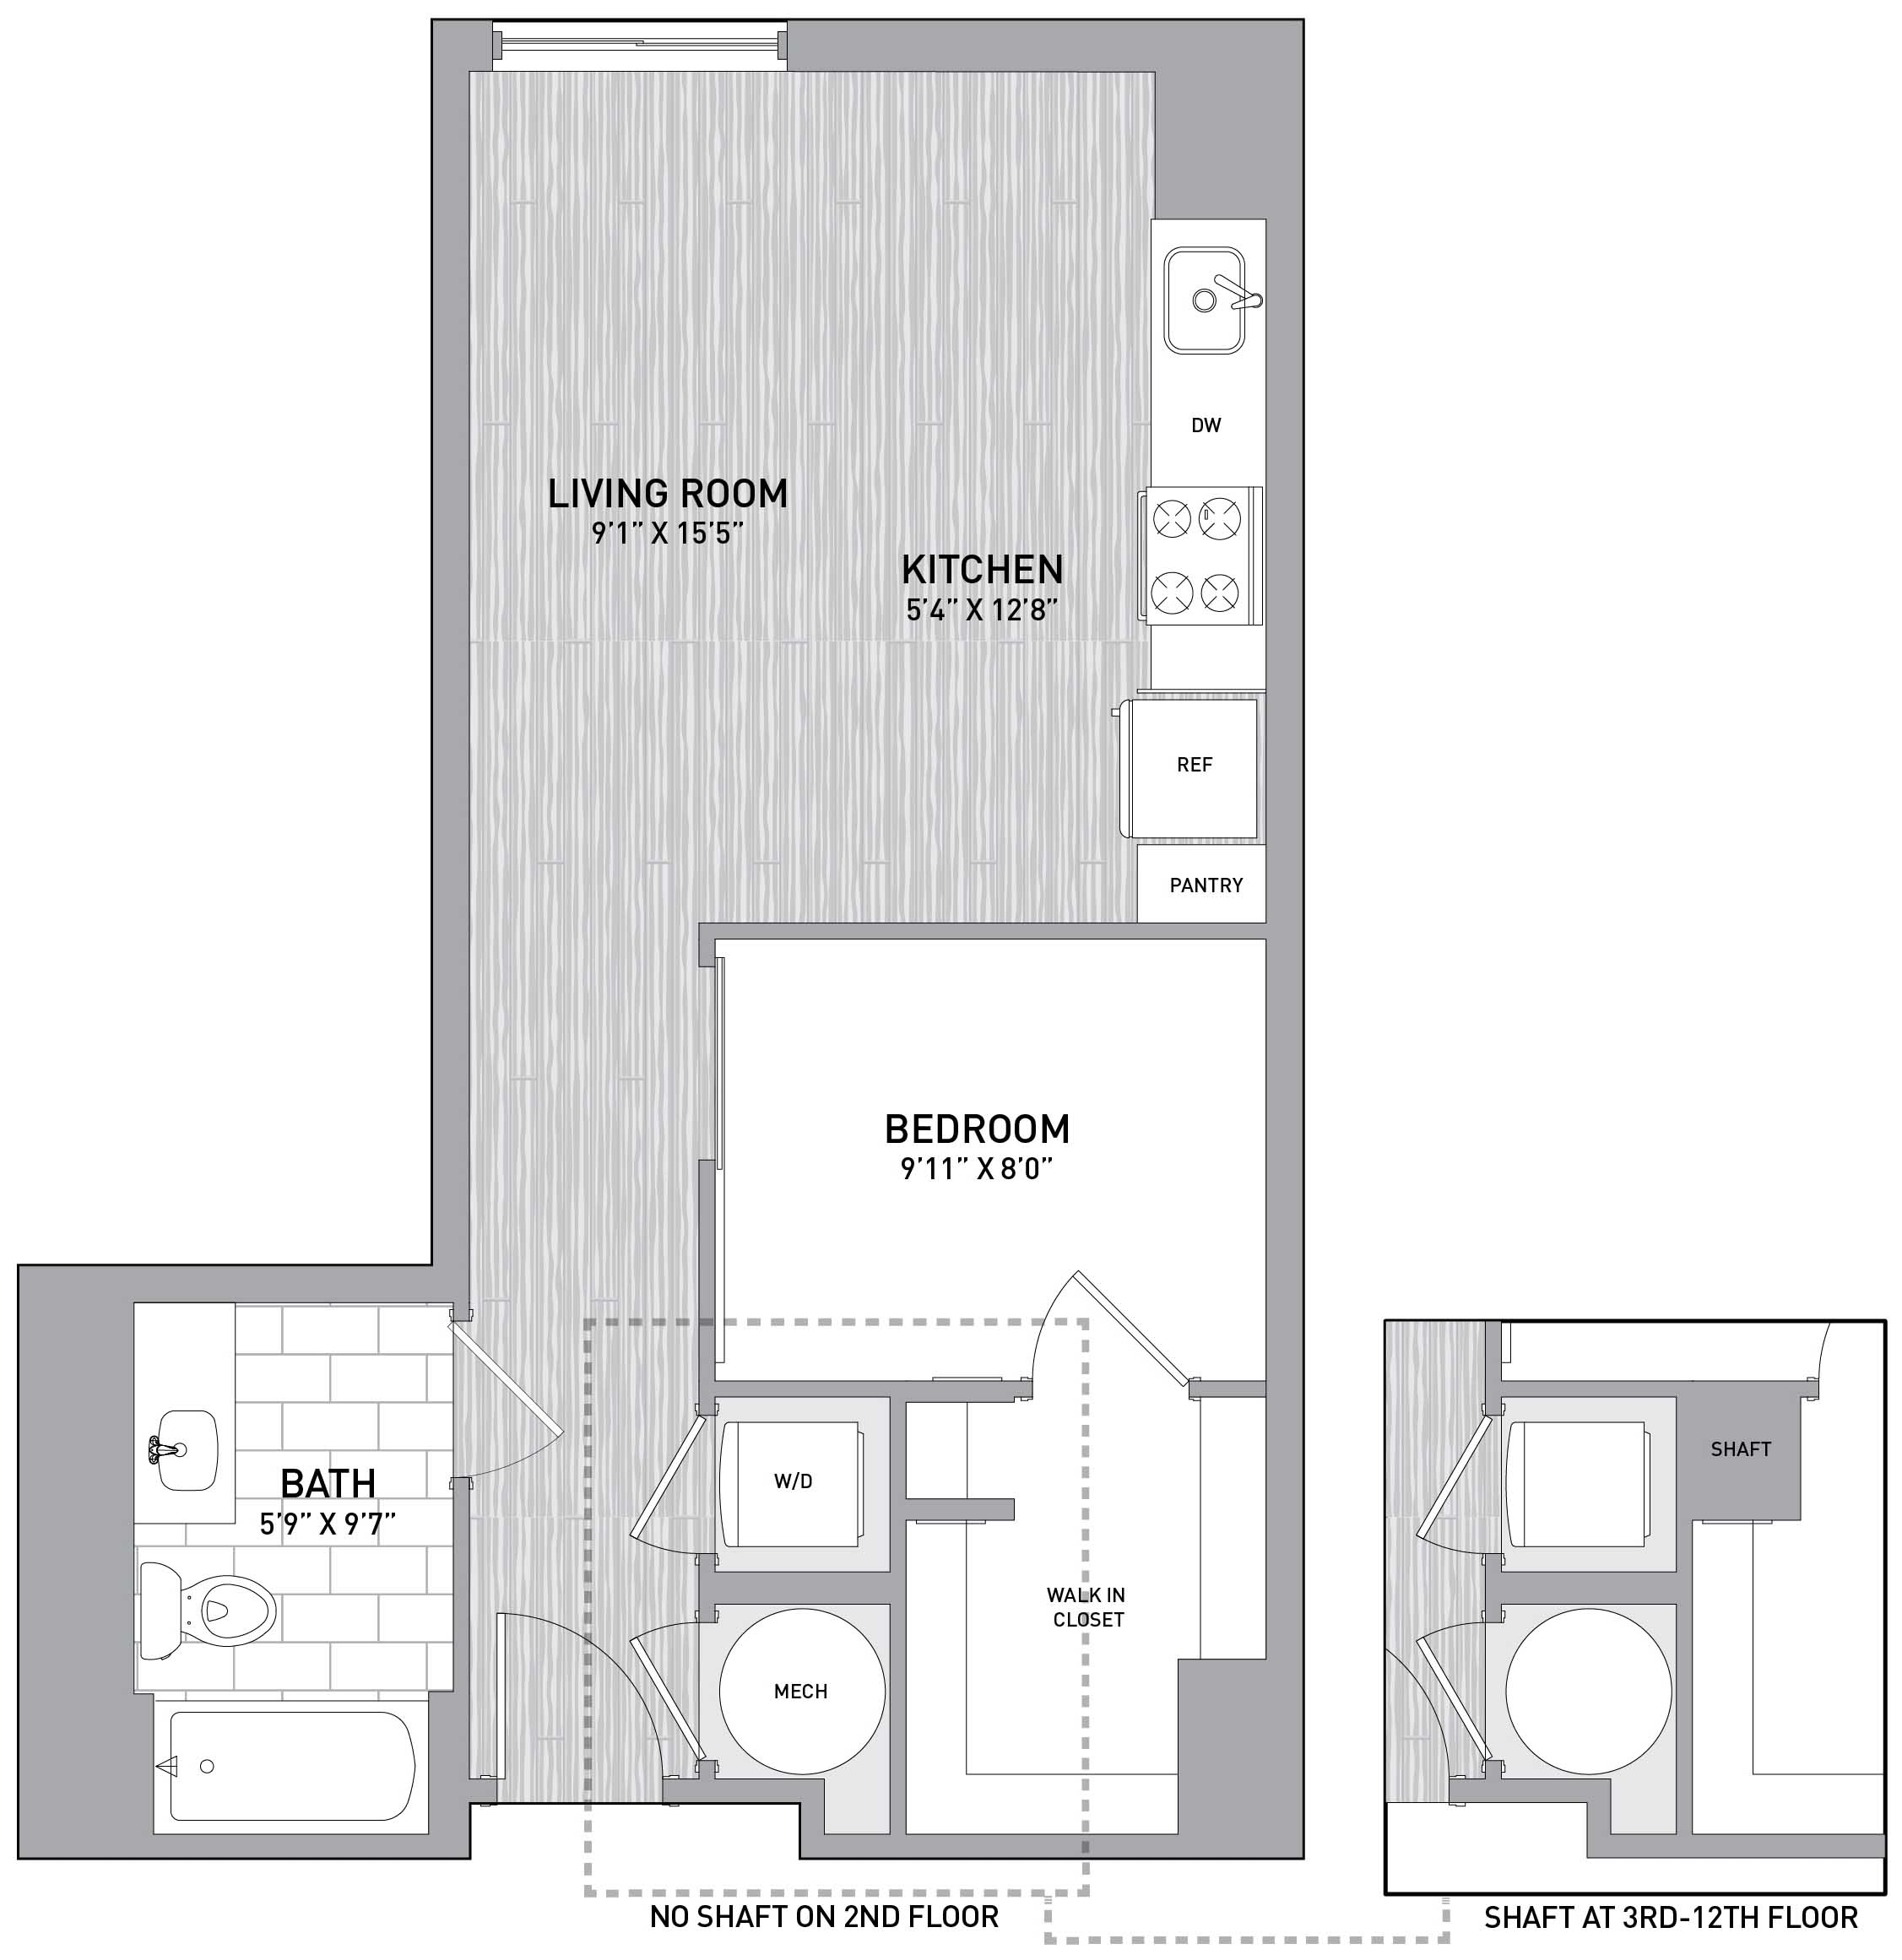 Floorplan Image of unit 151-0916